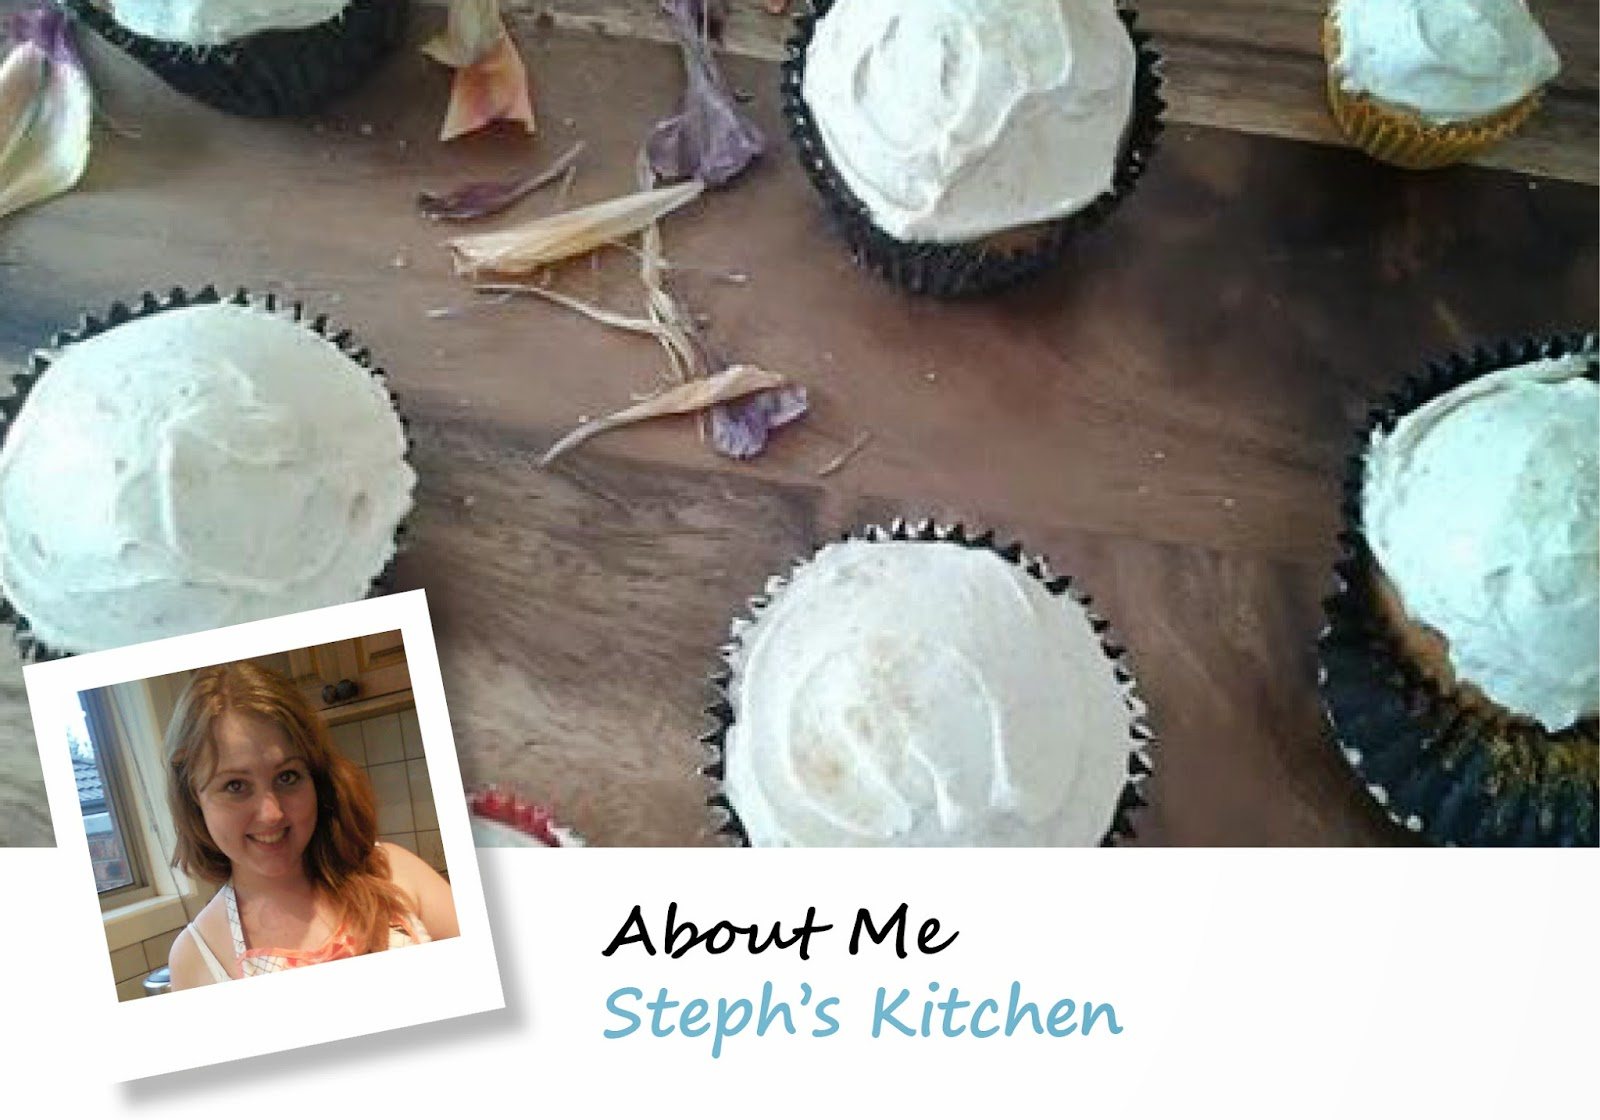 About me - Steph's Kitchen